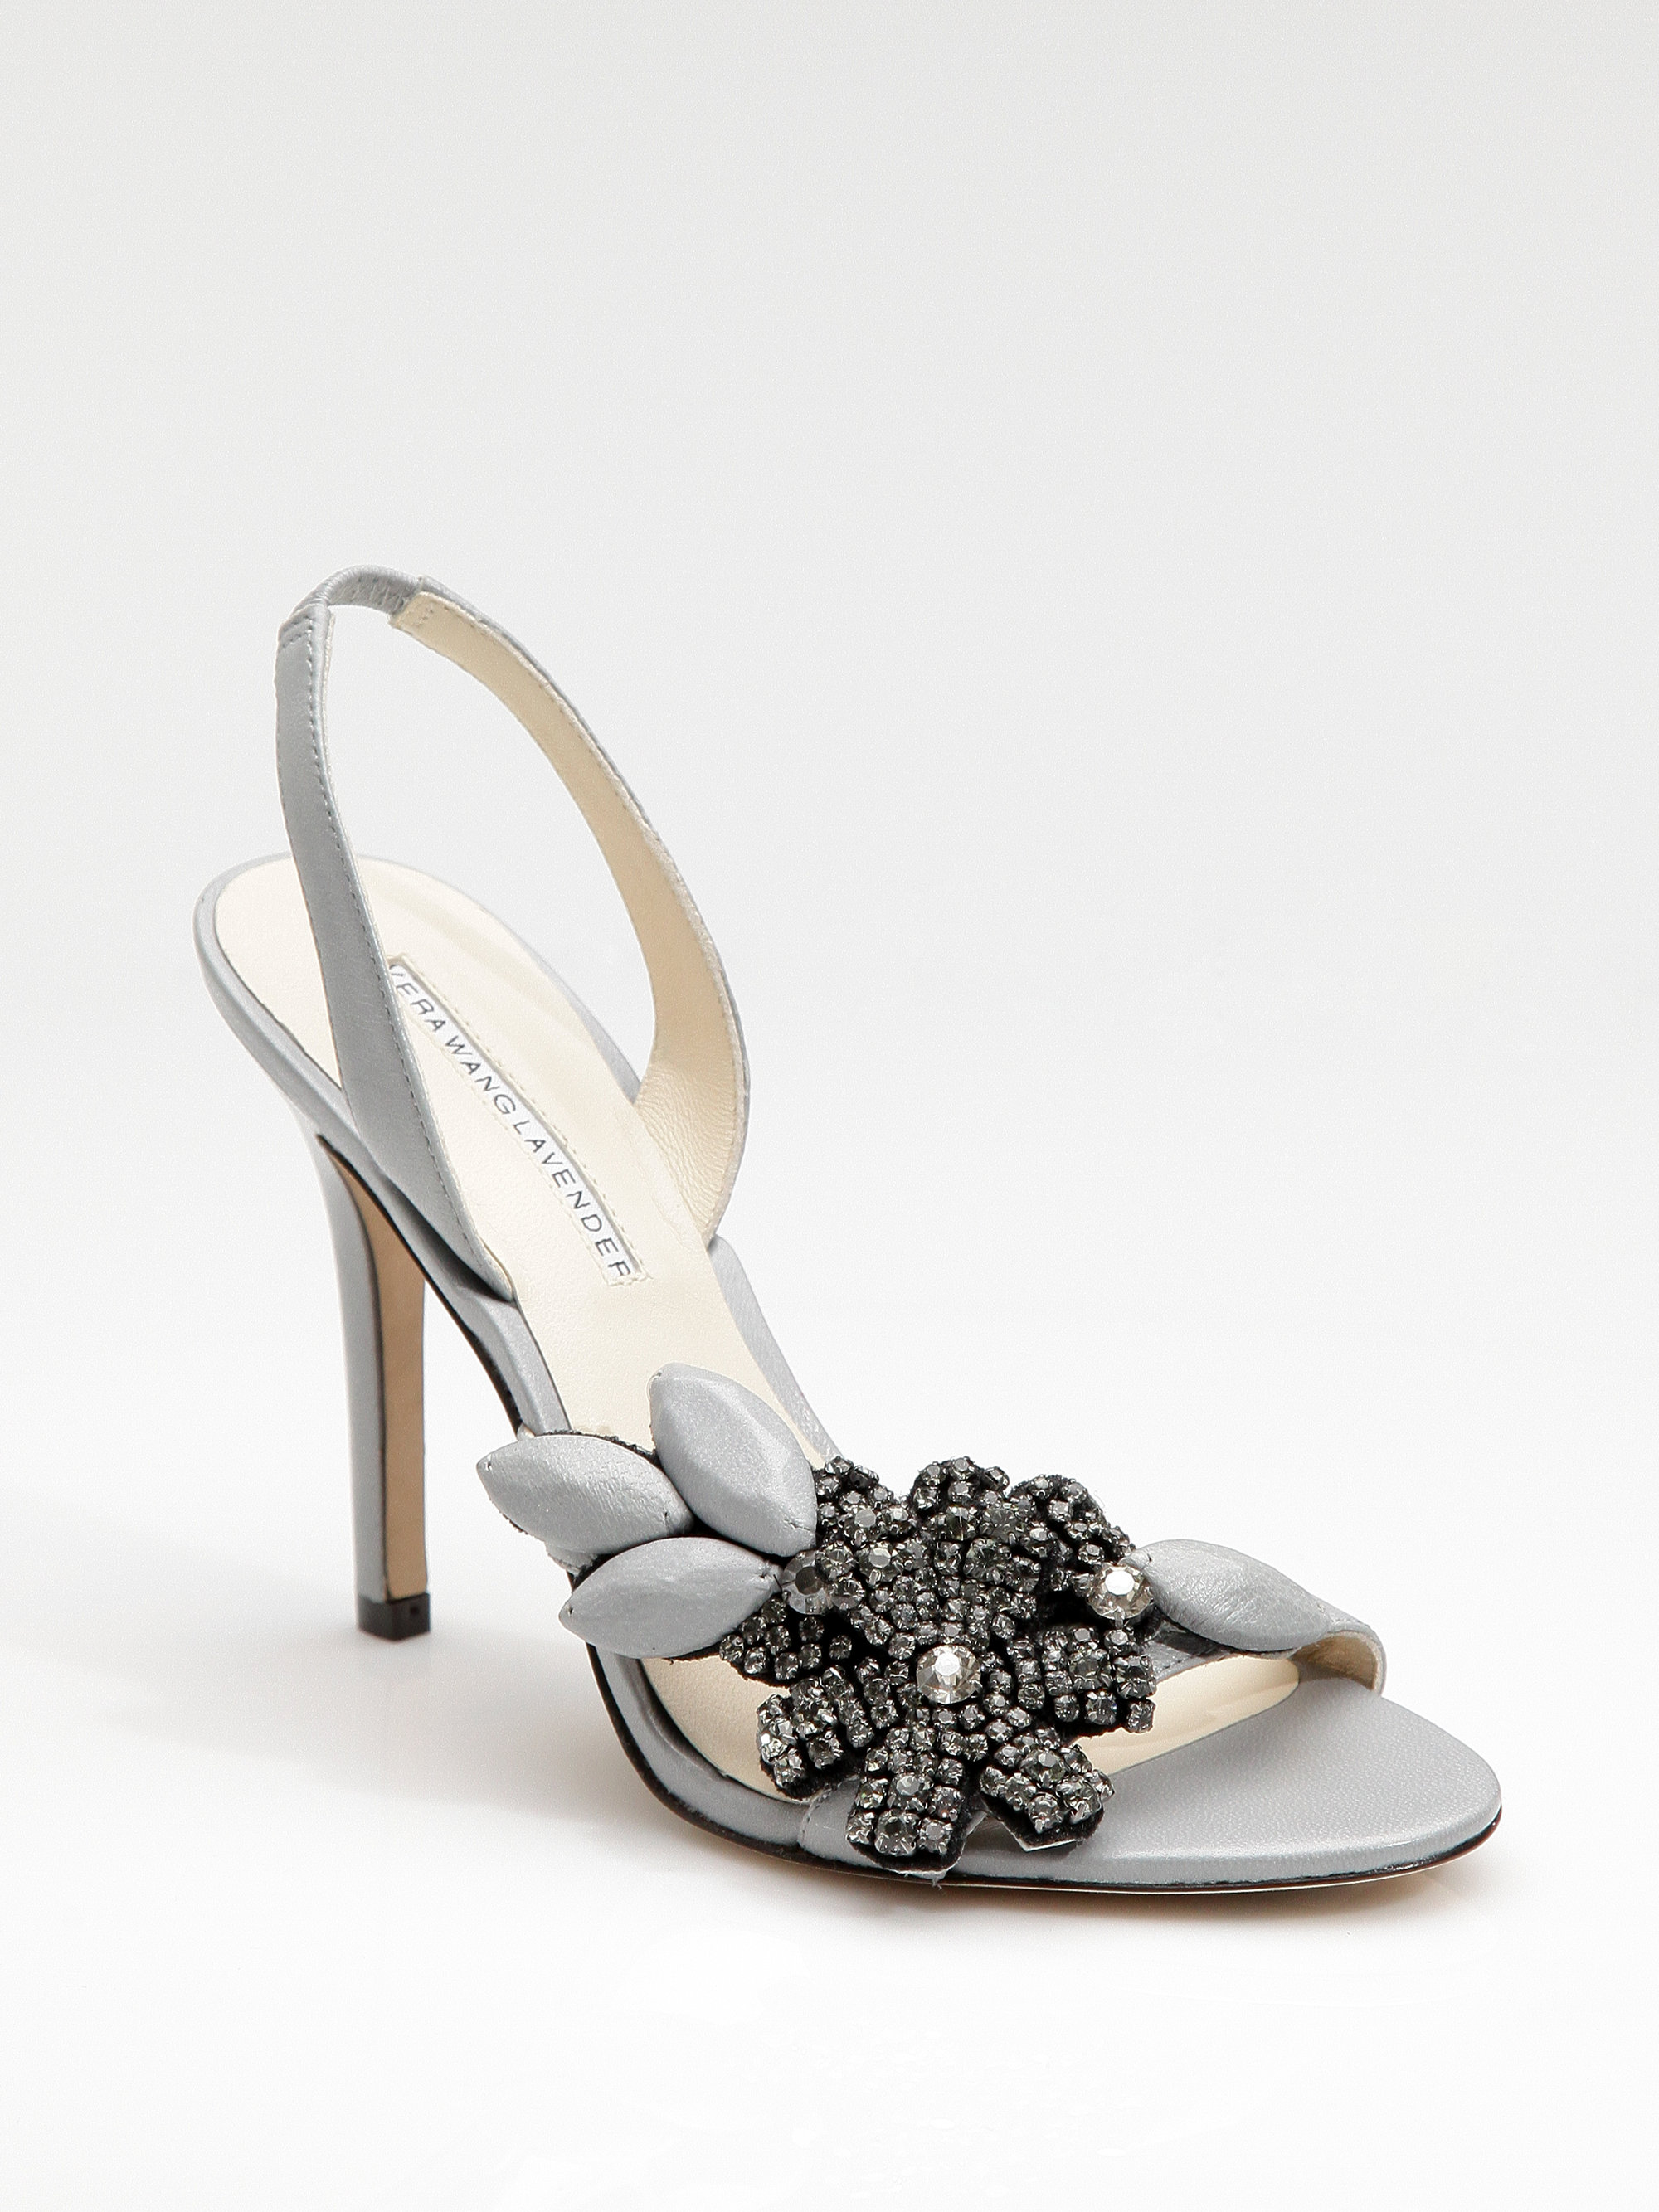 Vera Wang Jewel-Embellished Satin Sandals cheap sale fake clearance extremely IZndk